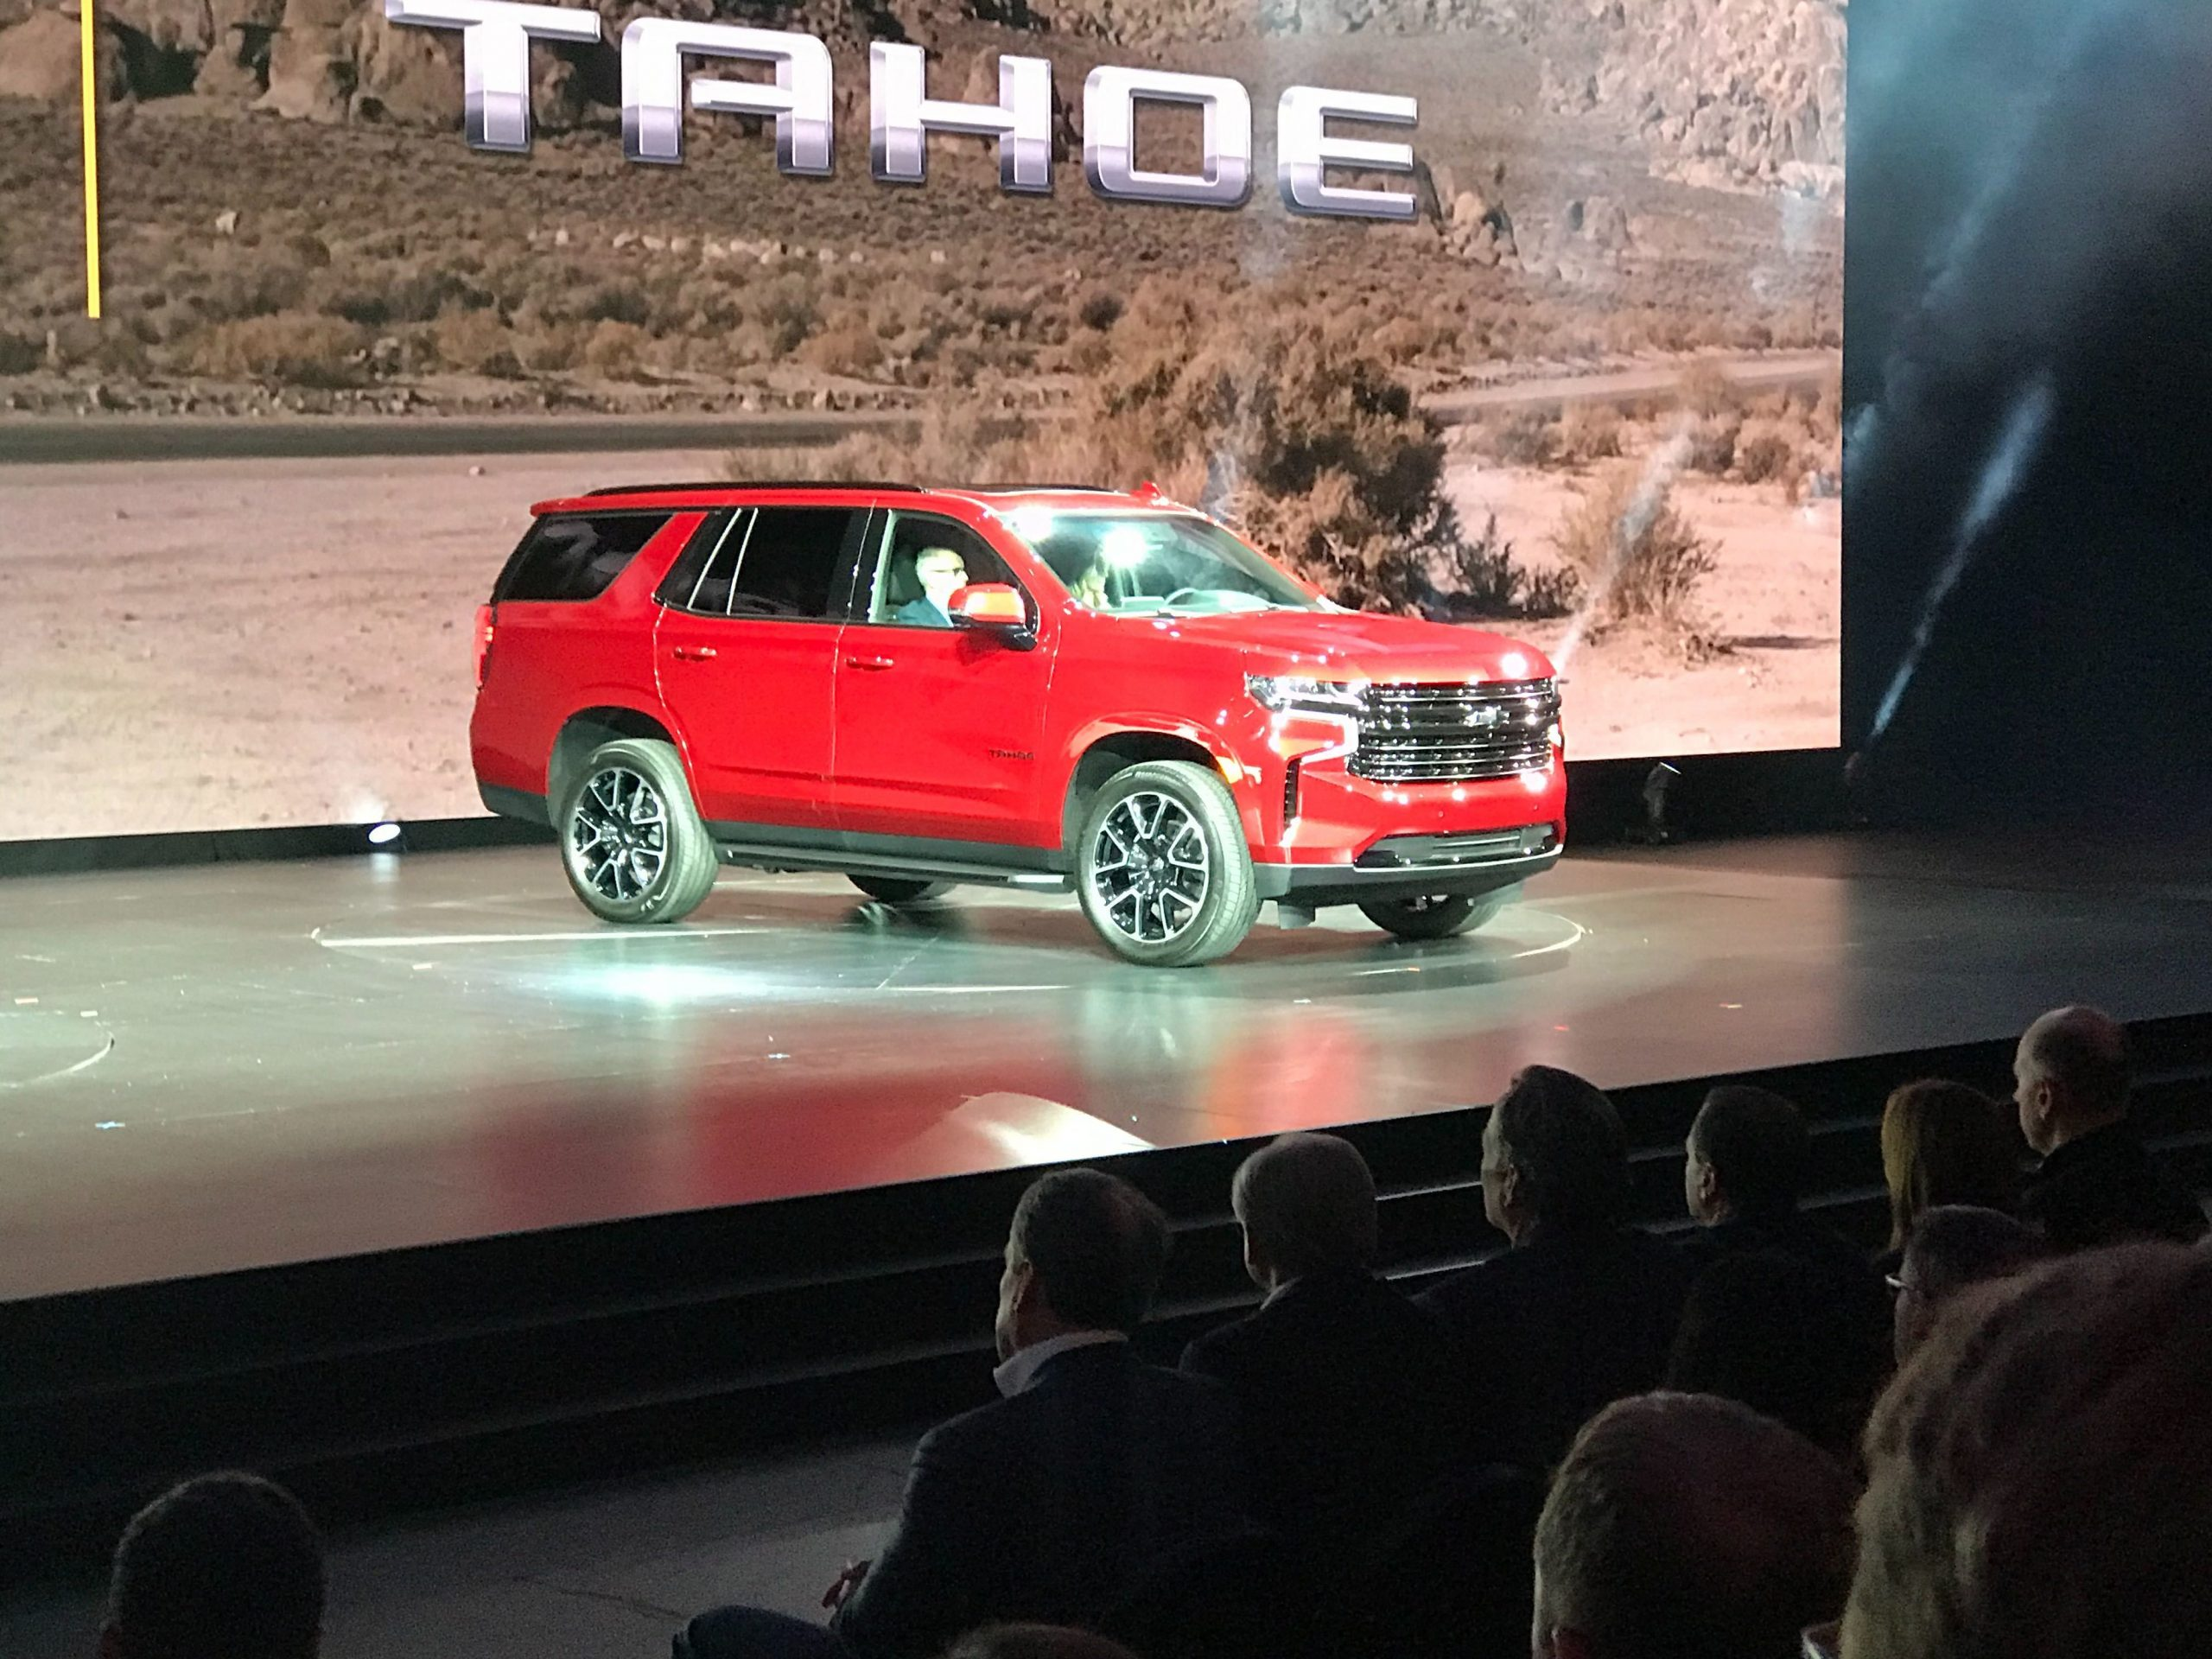 Vwvortex - 2021 Chevy Tahoe And Suburban Reveal 2021 Chevy Tahoe Lt Manual, Options, Price